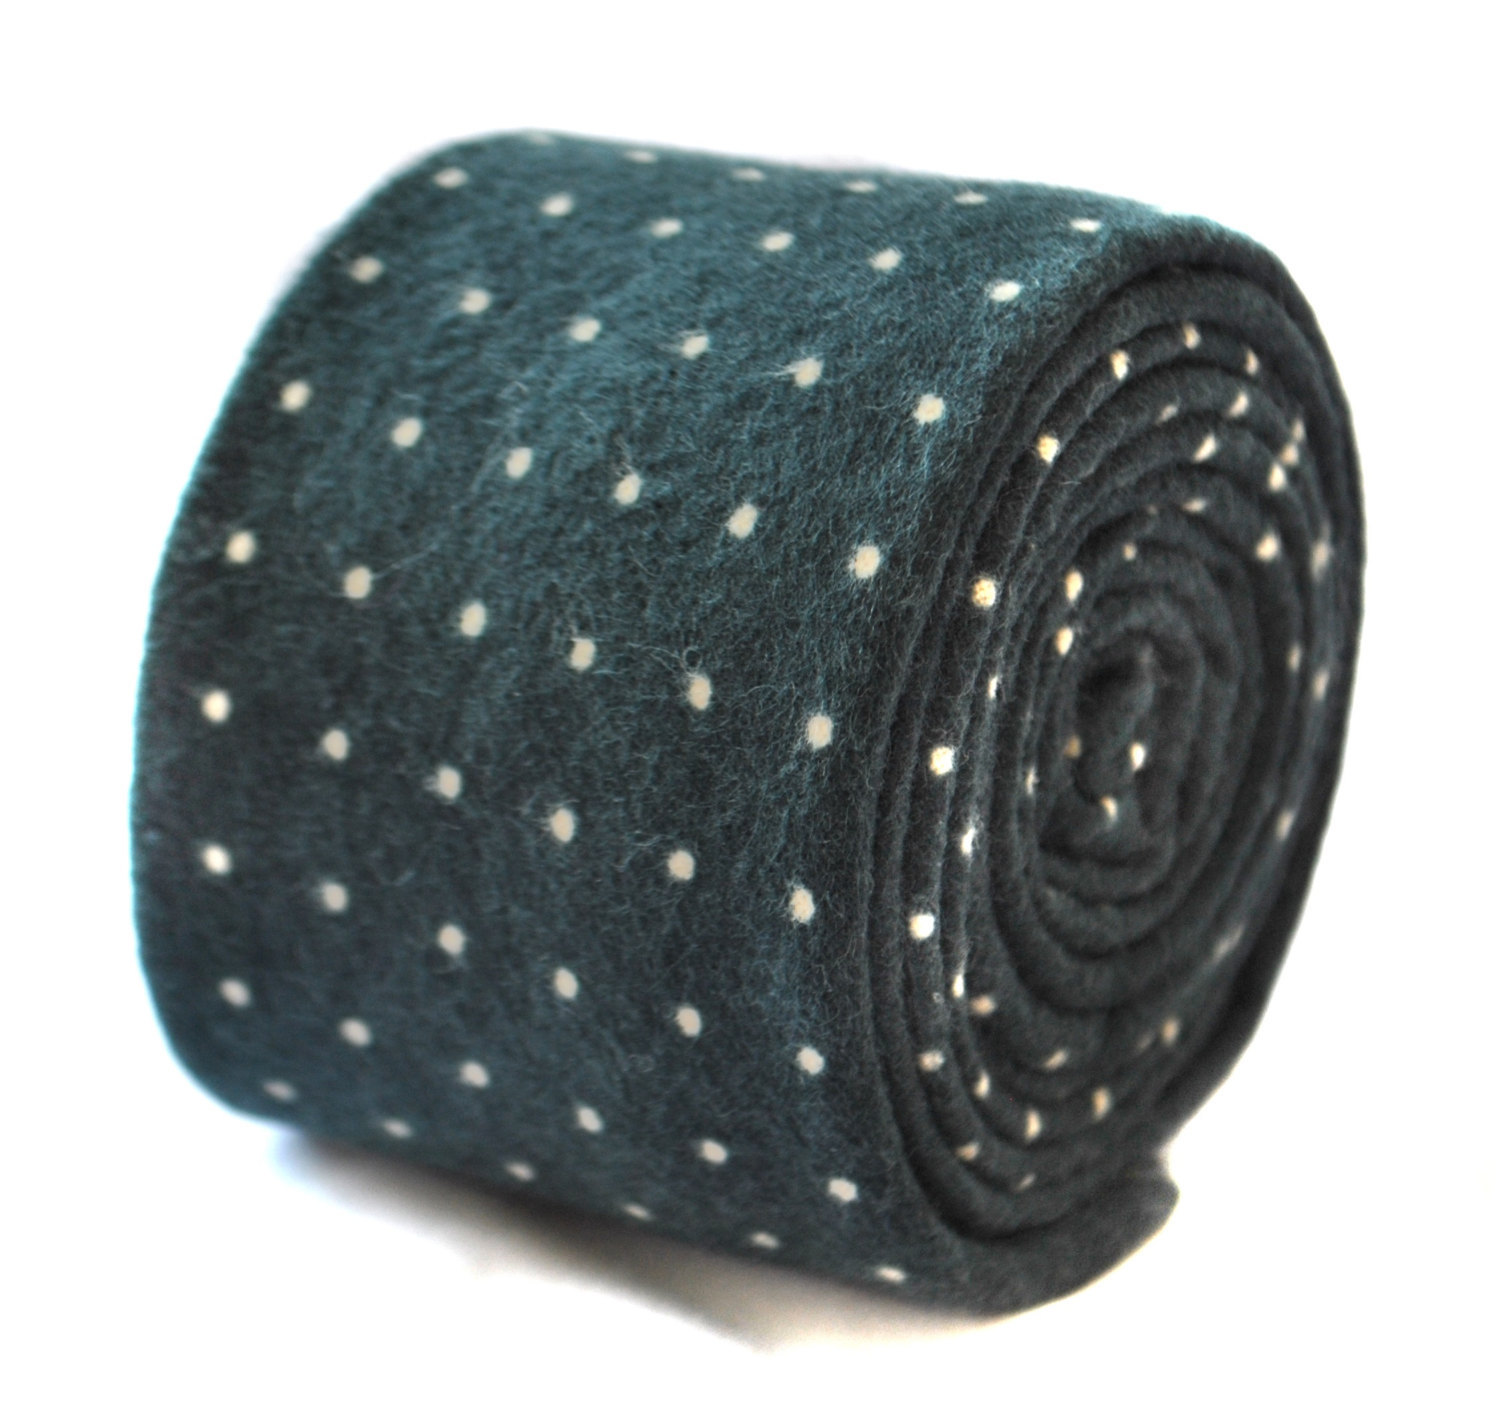 dark green and pin spot velvet style tie by Frederick Thomas FT1914